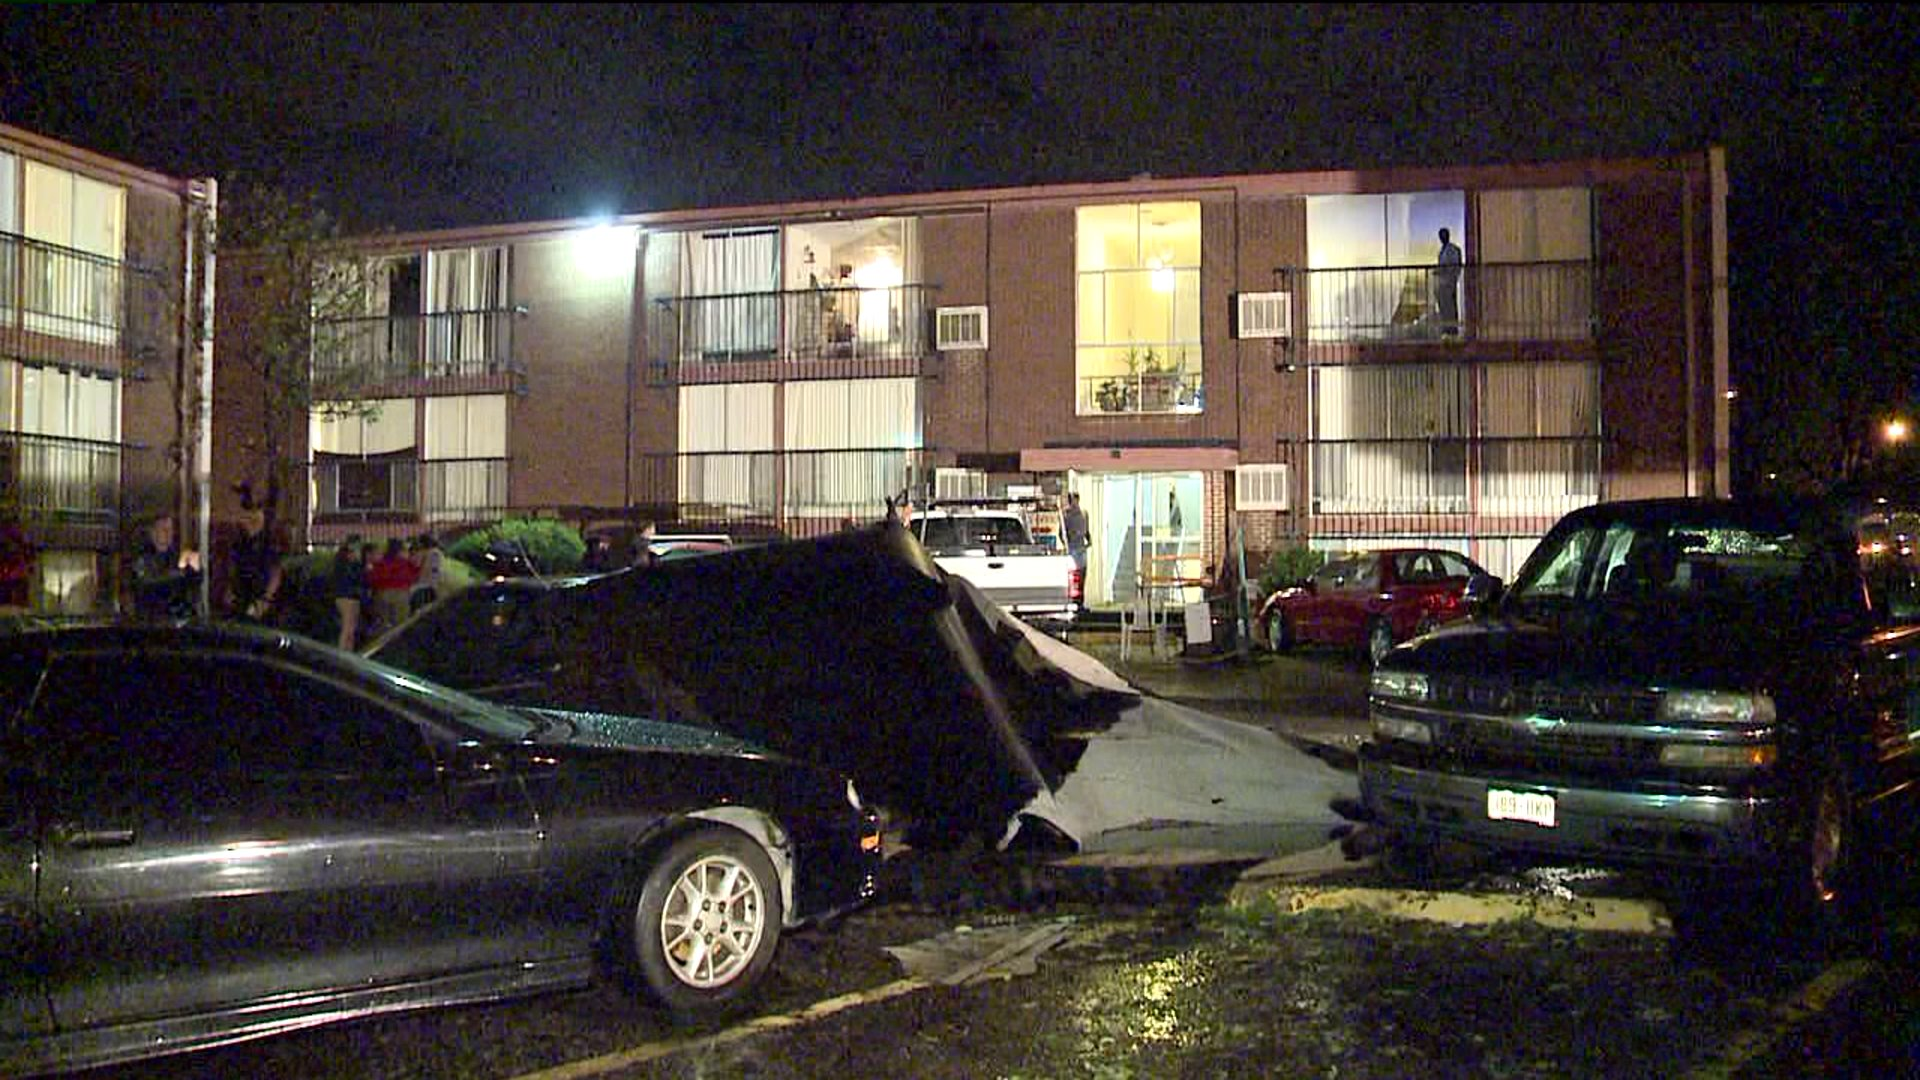 Part of apartment building roof blown off at 870 South Birch Street in Denver